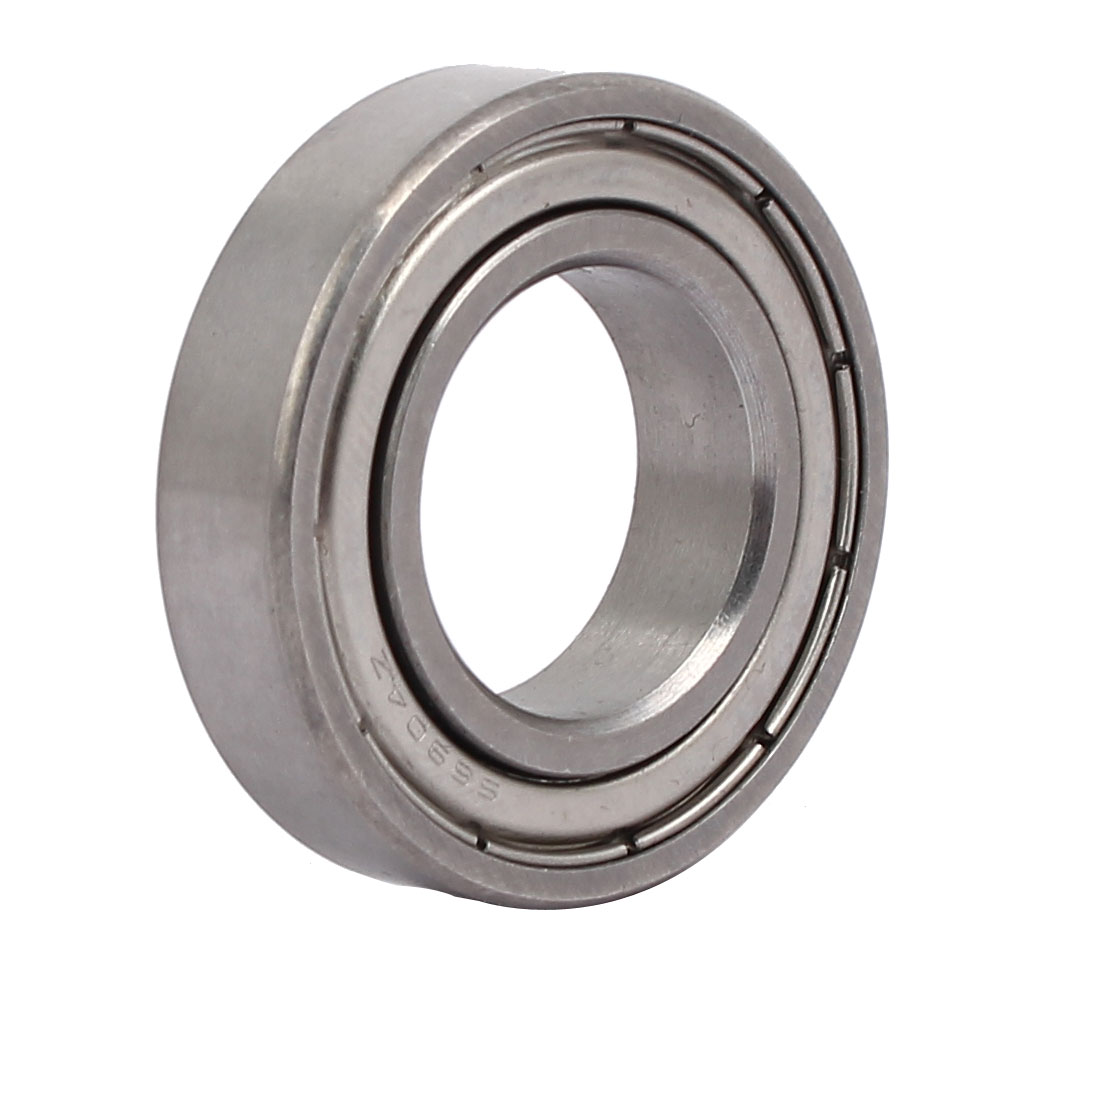 S6904Z 37mmx20mmx9mm Stainless Steel Shielded Deep Groove Radial Ball Bearing